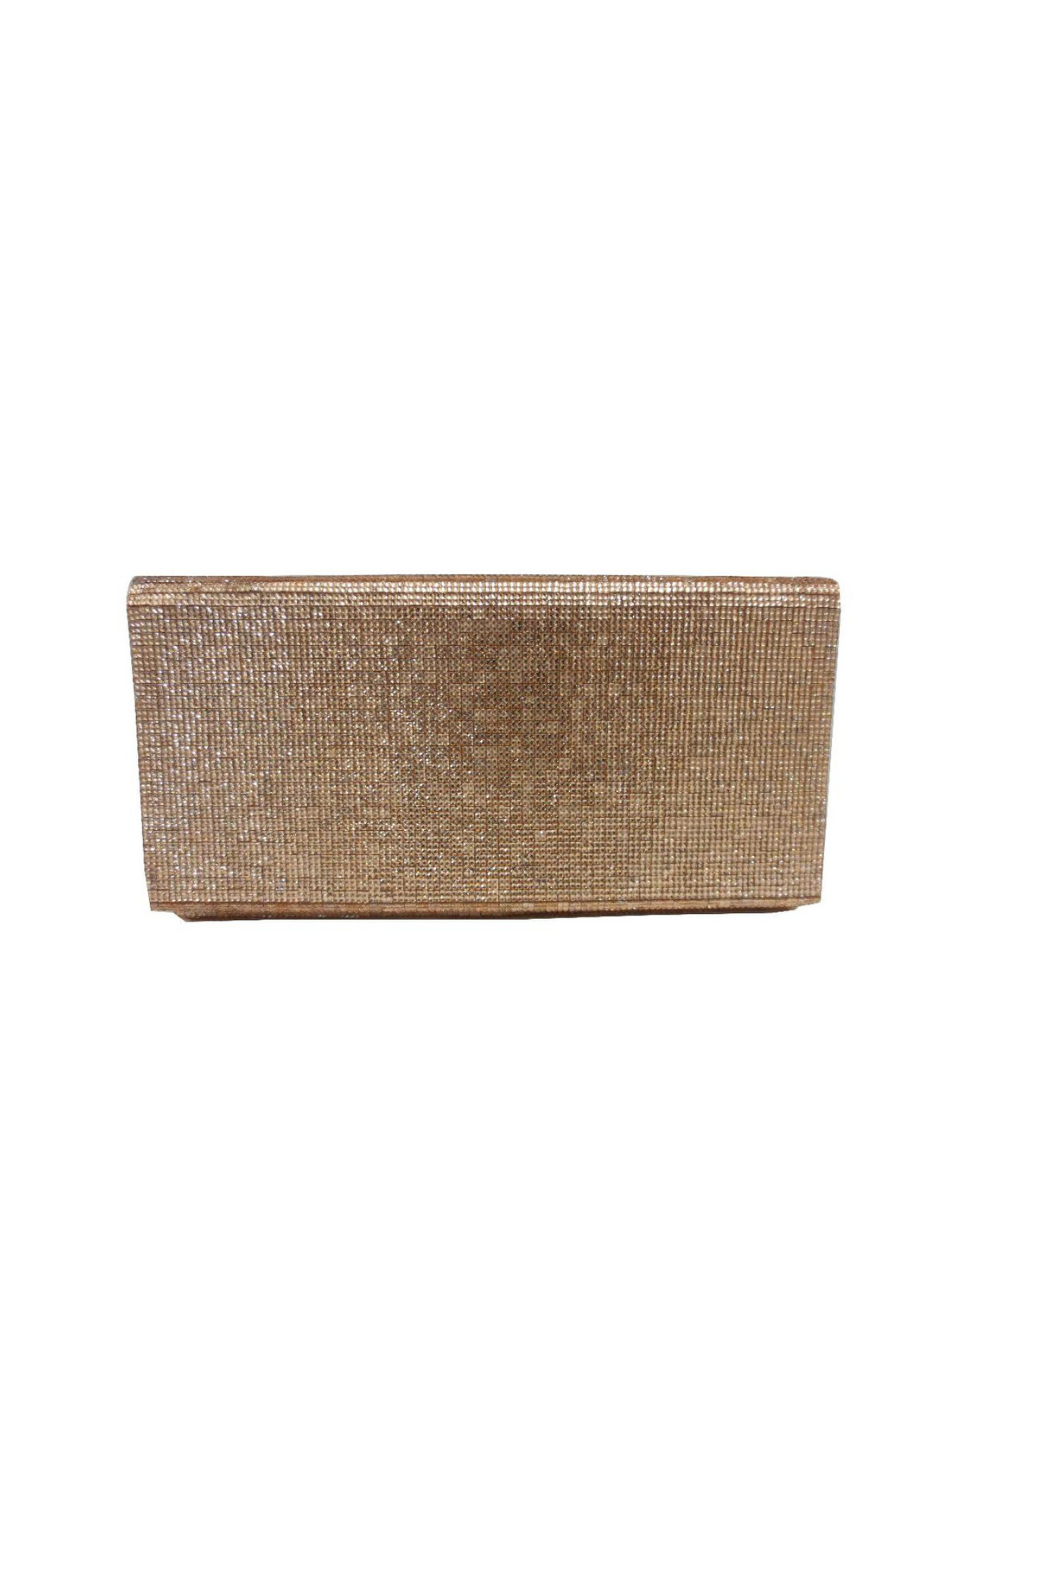 Sondra Roberts Textured Metallic Evening Clutch - Front Cropped Image